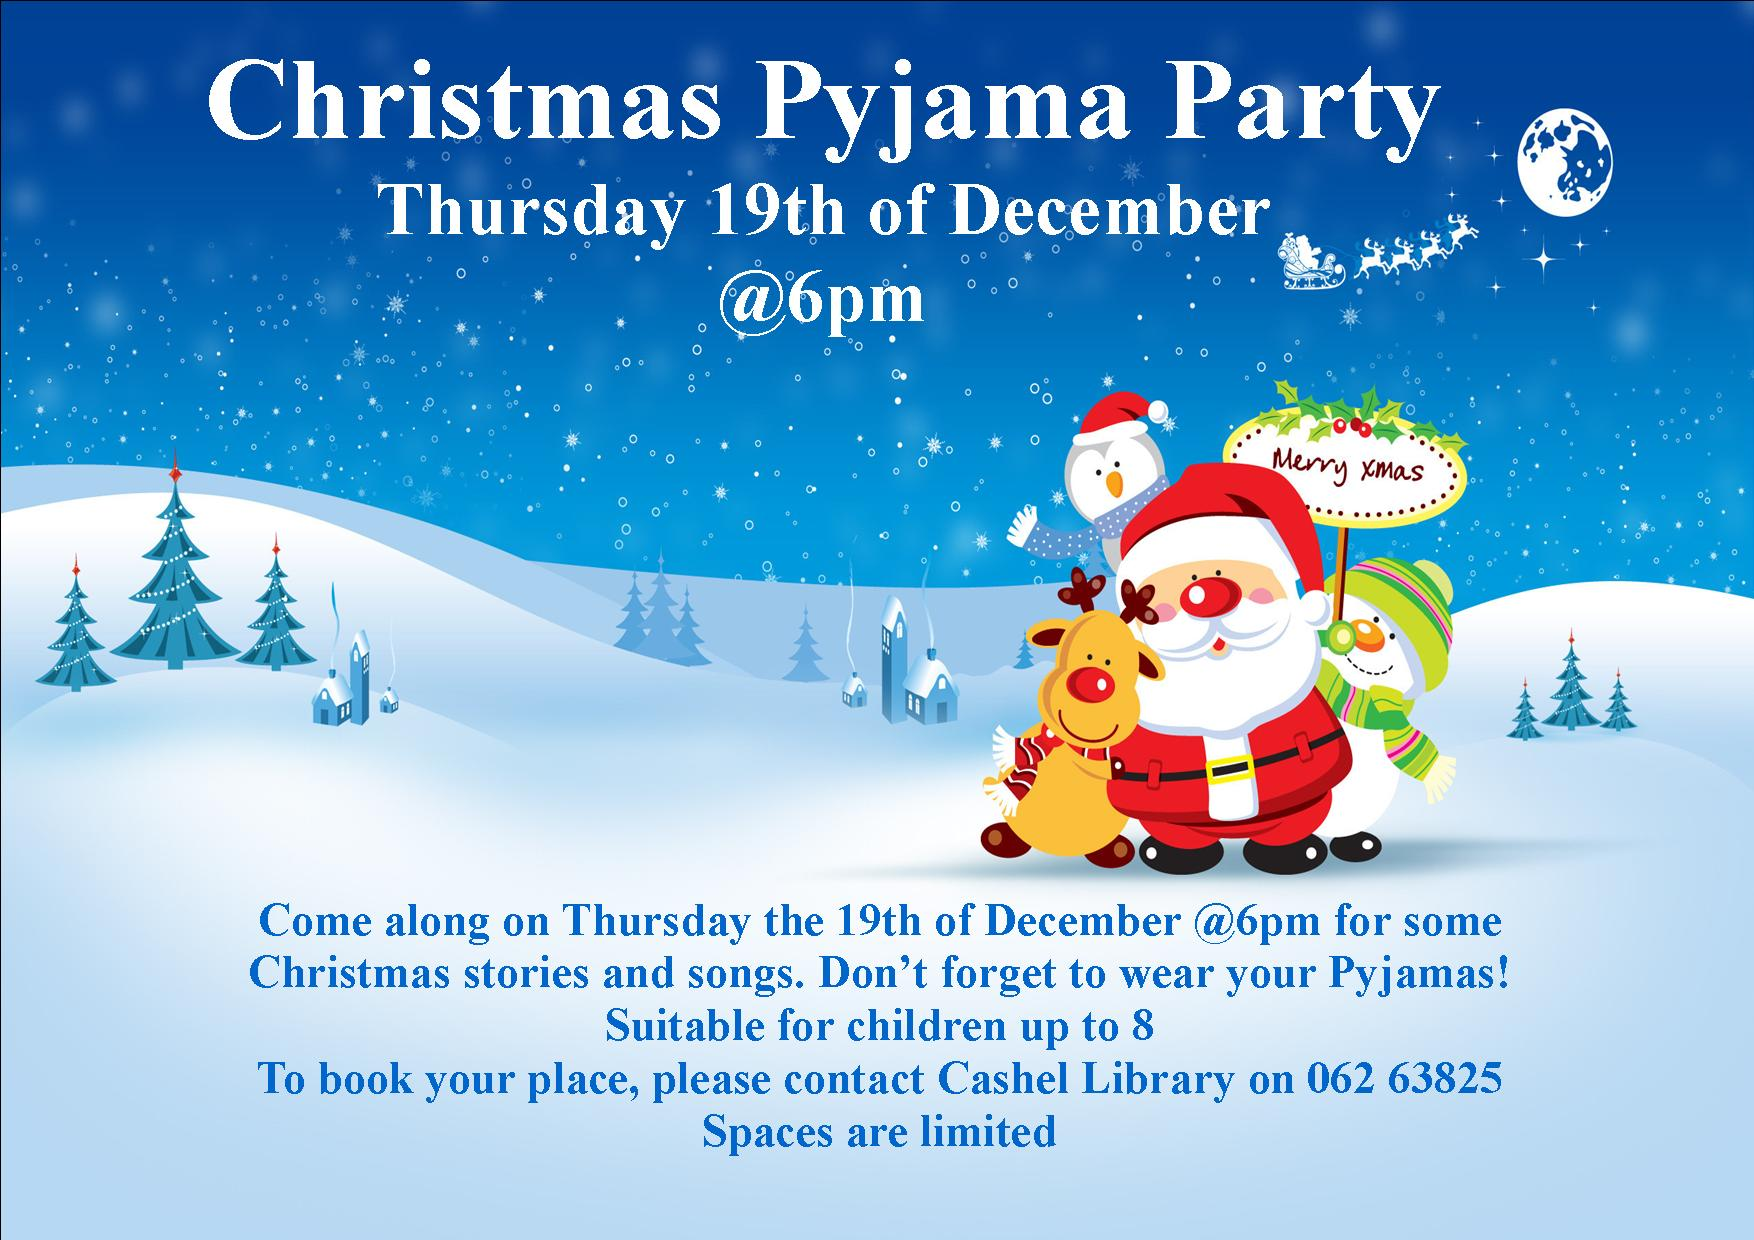 Christmas Pyjama Party In Cashel Library